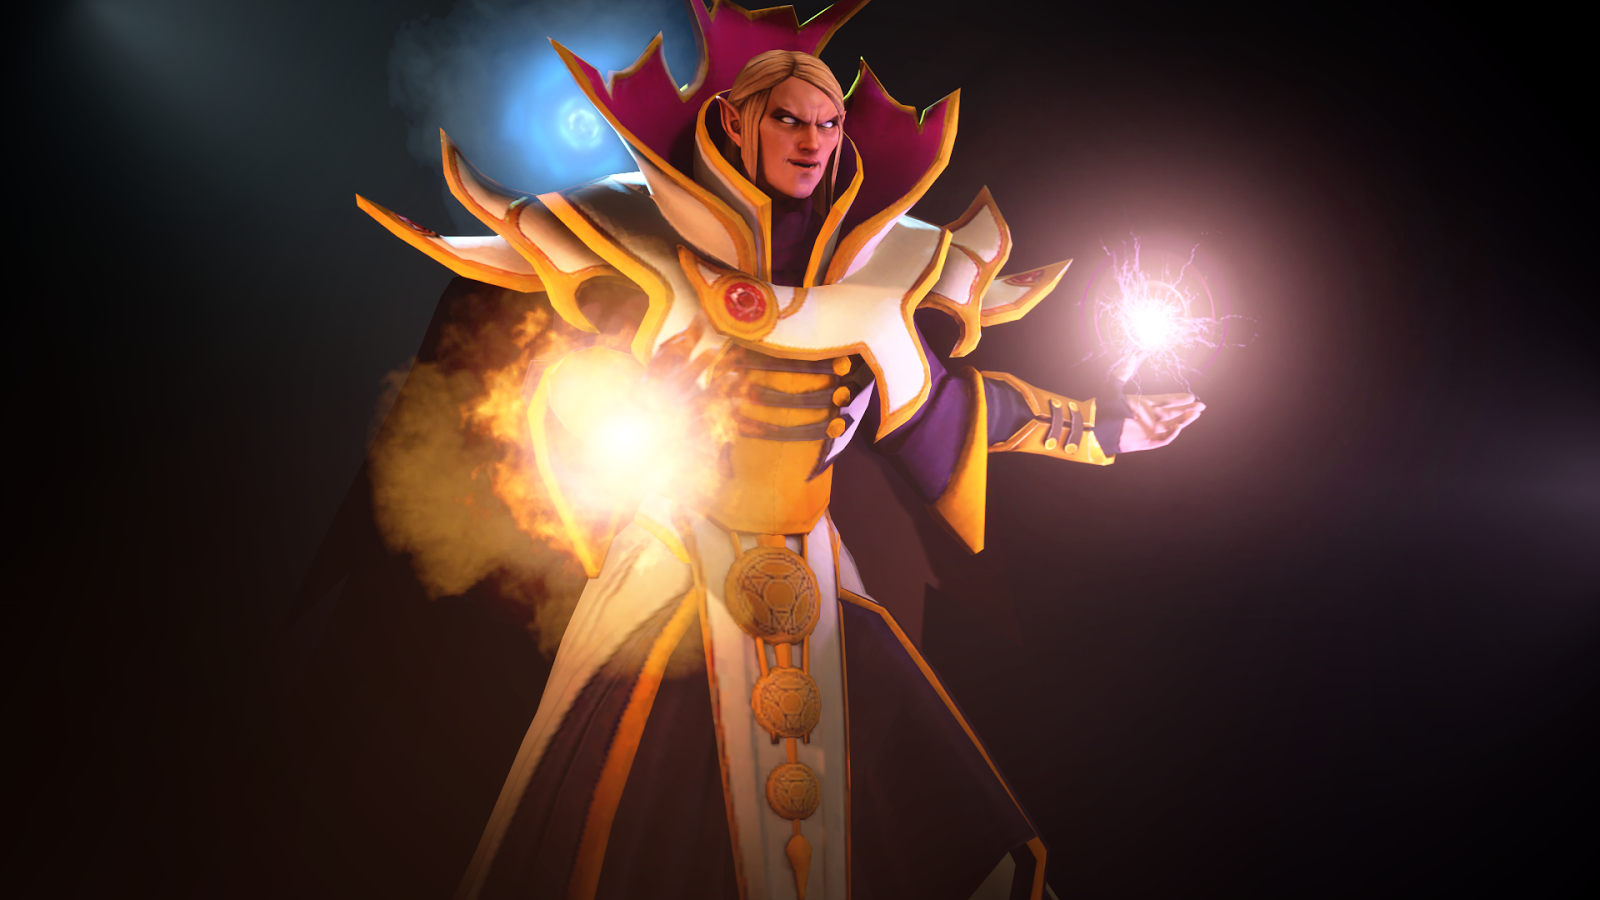 Dota 2 Wallpapers: Dota 2 Wallpaper - Invoker by ...